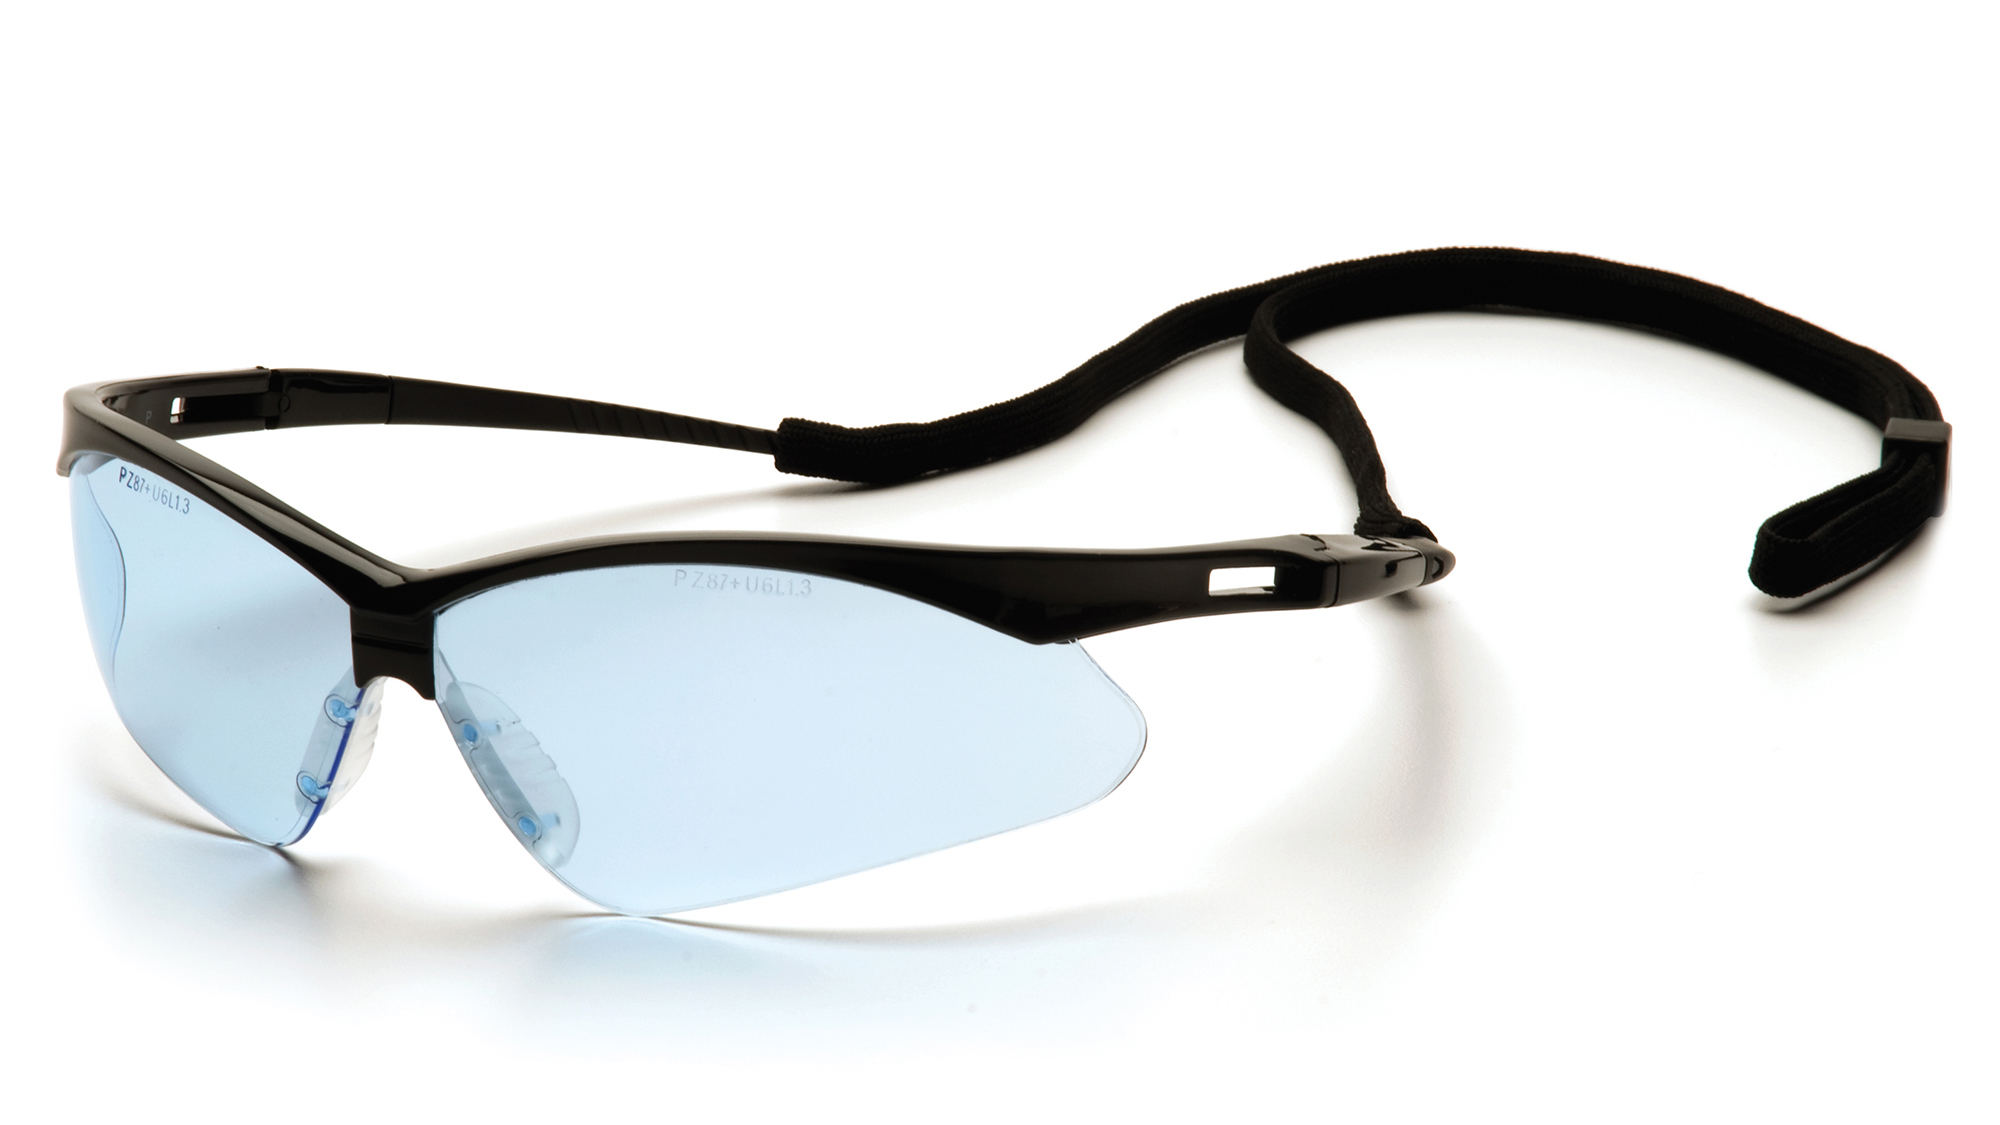 PMXTREME Safety Glasses - Black Frames Infinity Blue Lens